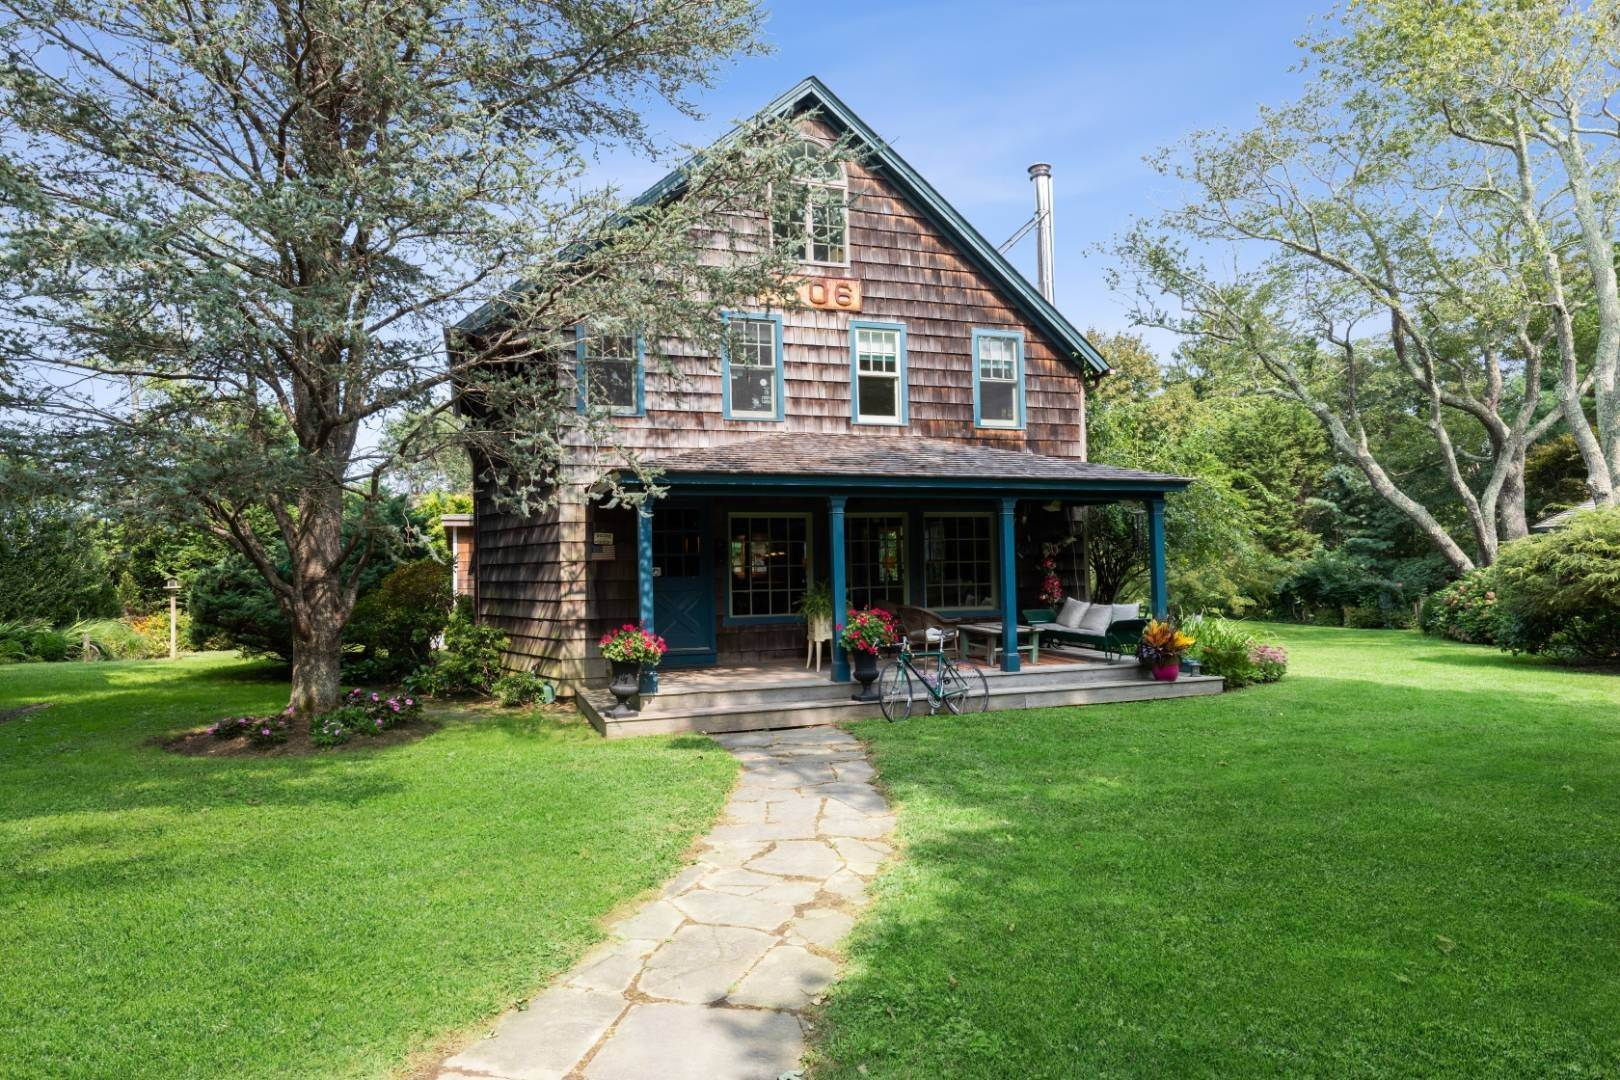 Single Family Home at Stunning, Secluded And Convenient In The Heart Of Bridgehampton Bridgehampton, NY 11932